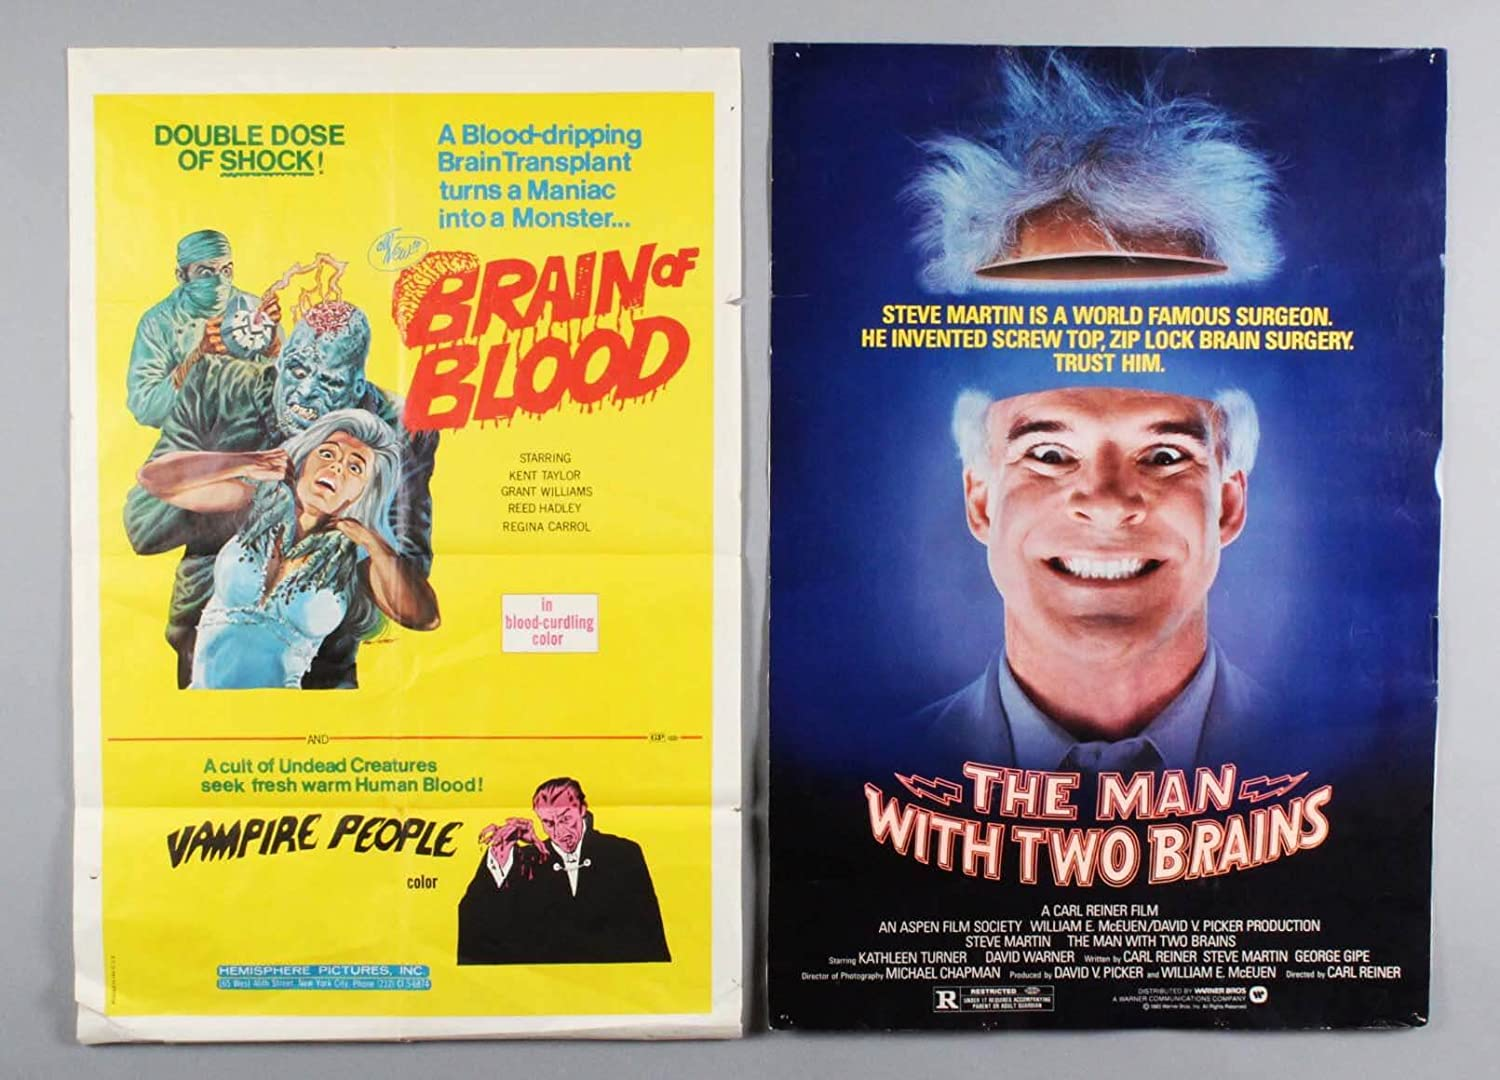 1972 BRAIN OF BLOOD Movie Poster & The Man With Two Brains